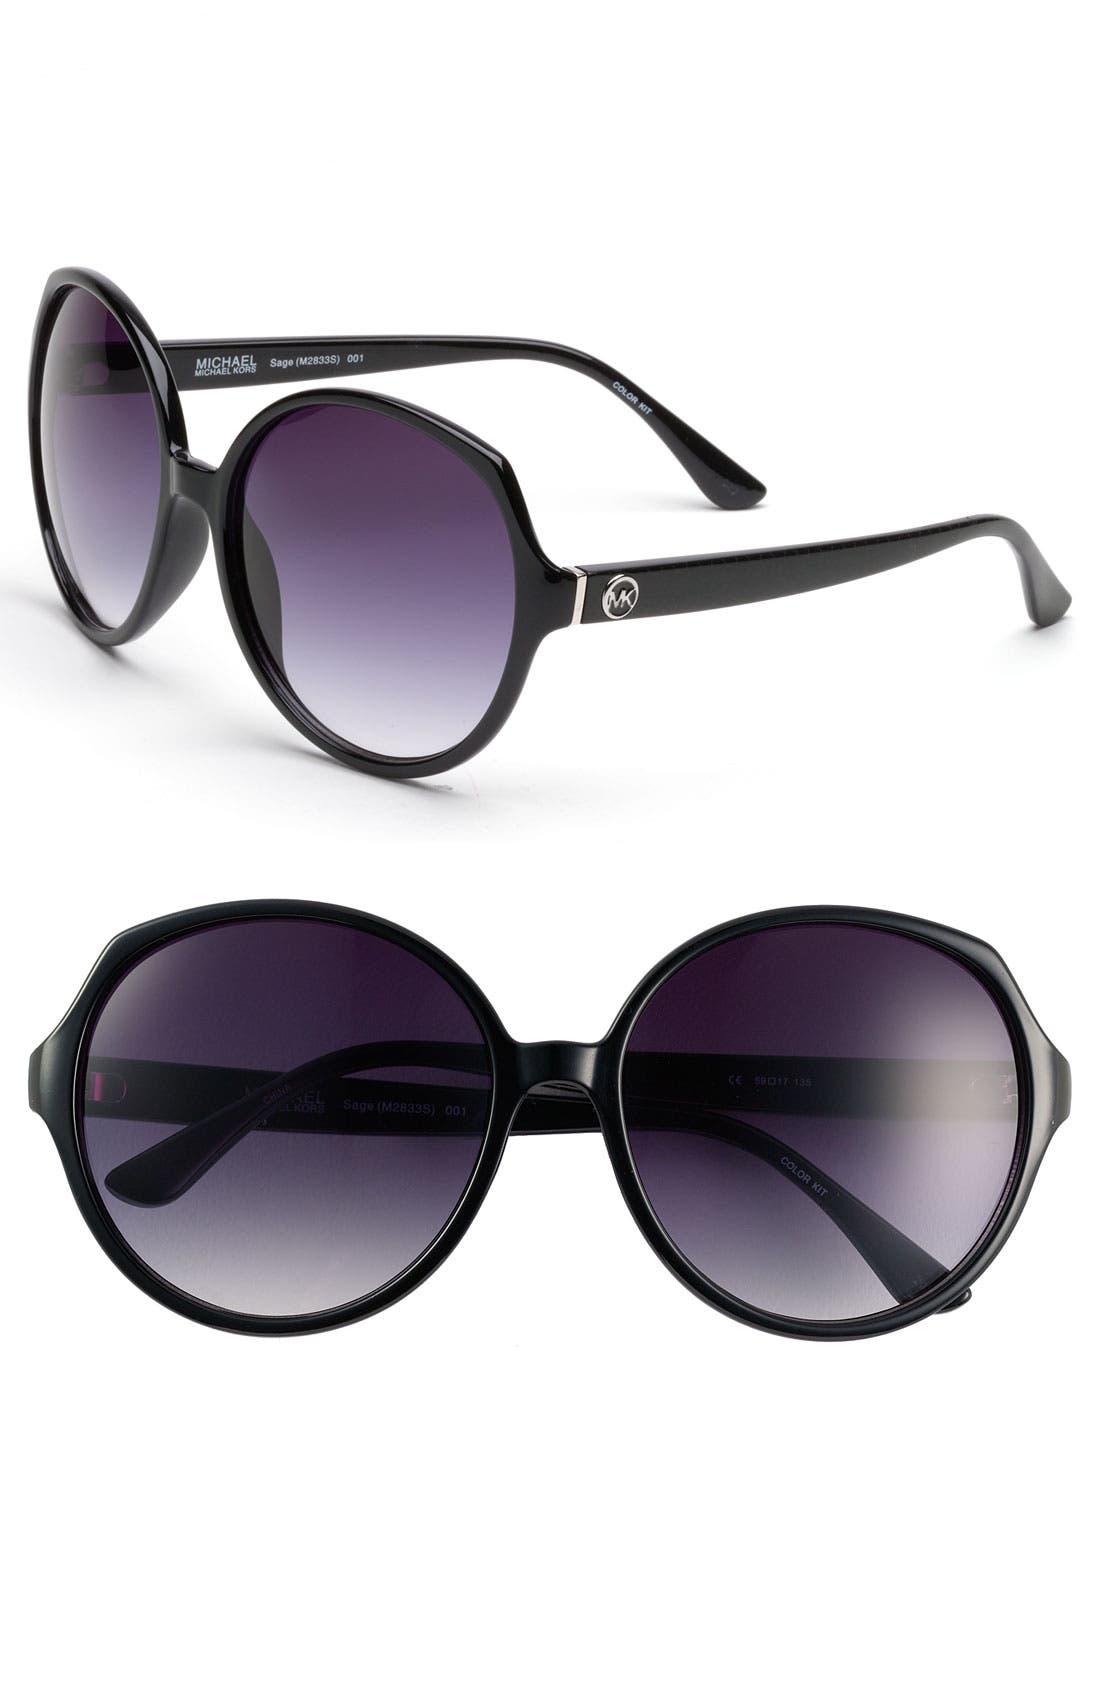 Main Image - MICHAEL Michael Kors 59mm Retro Sunglasses